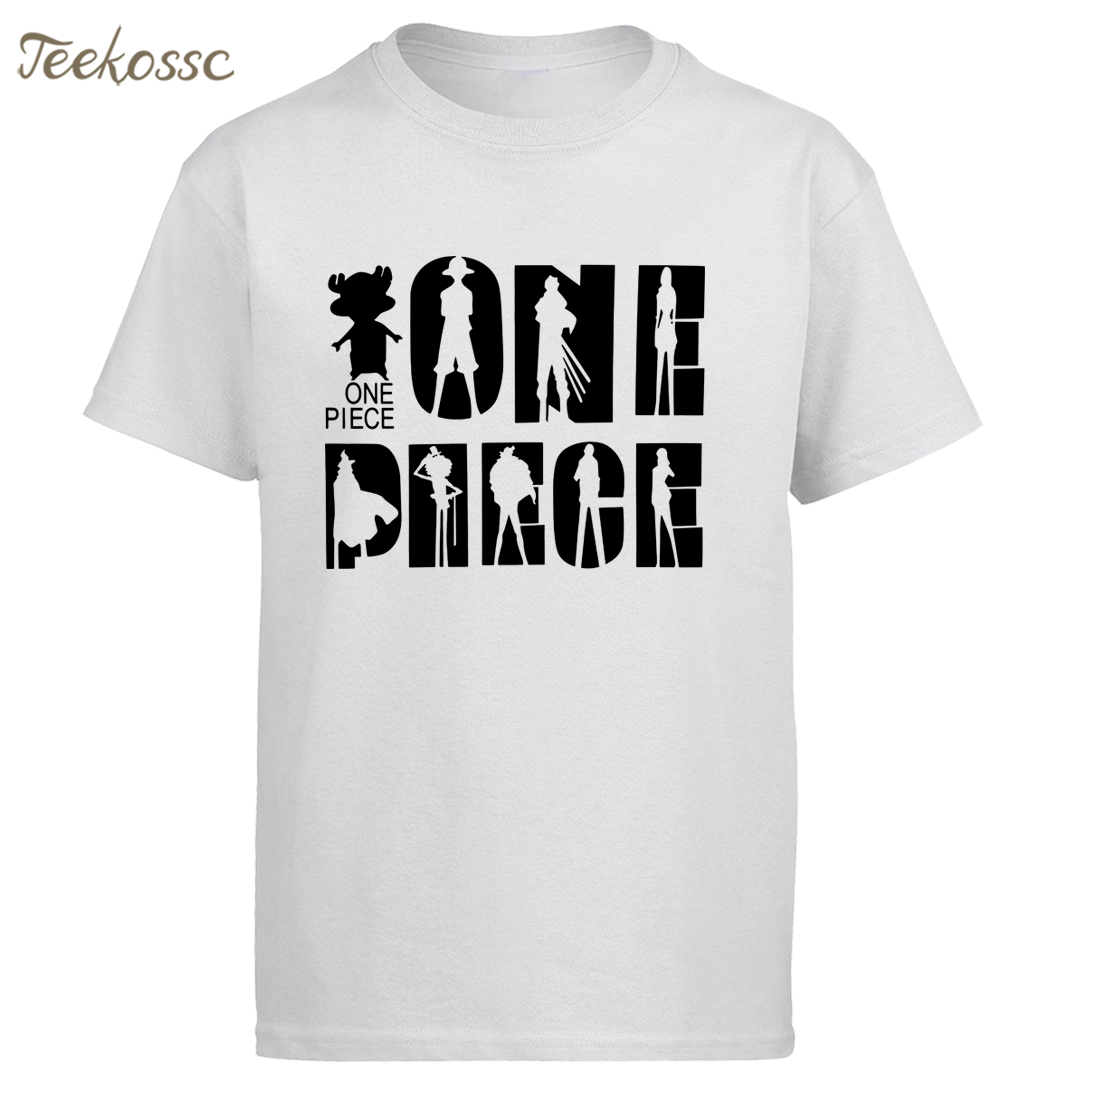 For Anime Fans Japanese One Piece   T     Shirt   Men 2018 Summer Casual Fashion   T     Shirts   100% Cotton High Quality Short Sleeve   T  -  Shirts